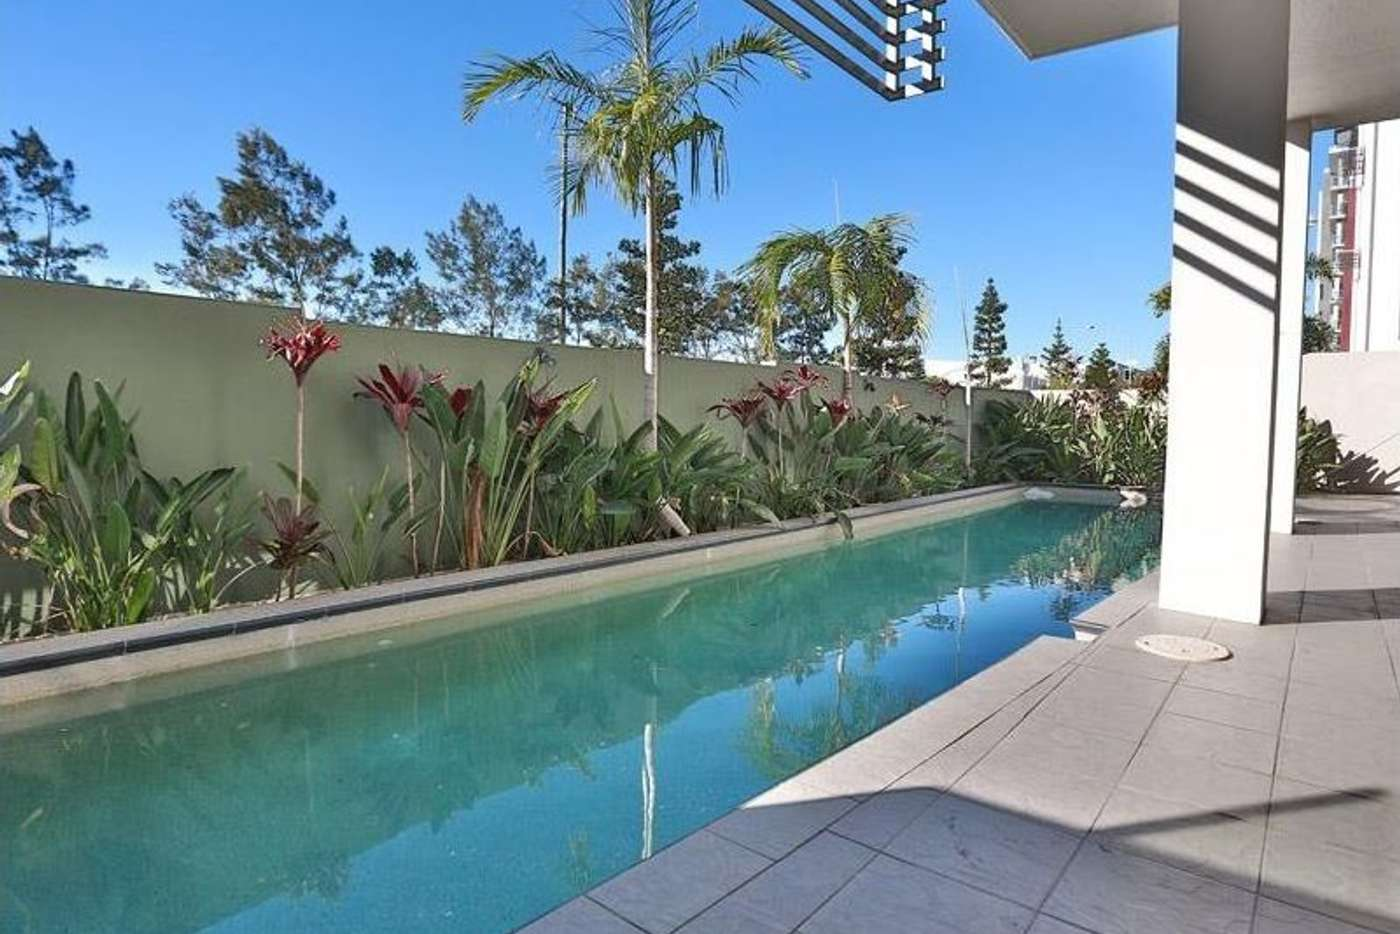 Main view of Homely unit listing, 12/41 Playfield Street, Chermside QLD 4032